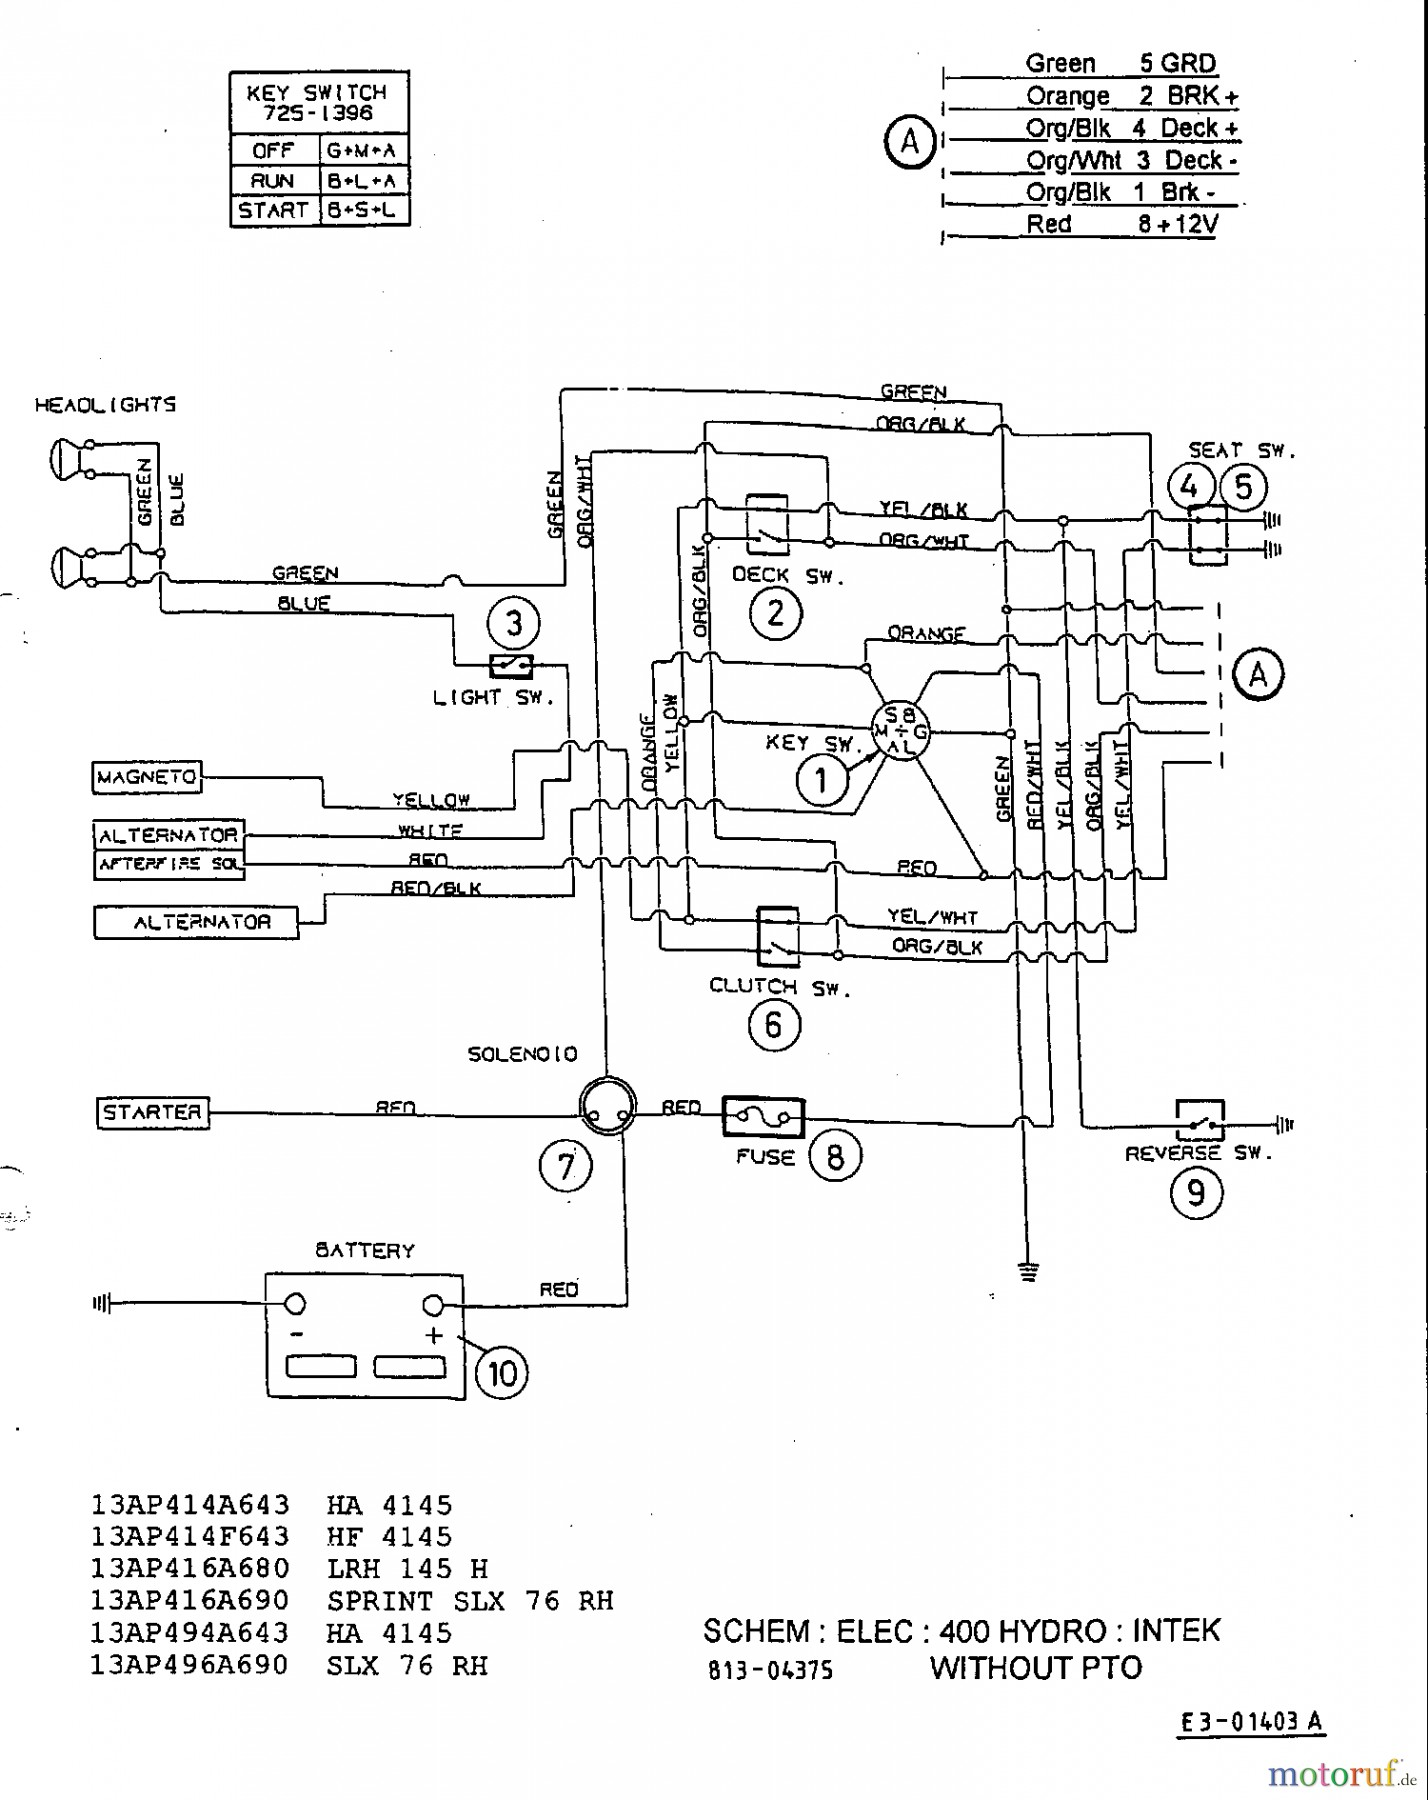 Snapper Rear Engine Rider Wiring Diagram 49cc Pocket Bike Schematic Related Post